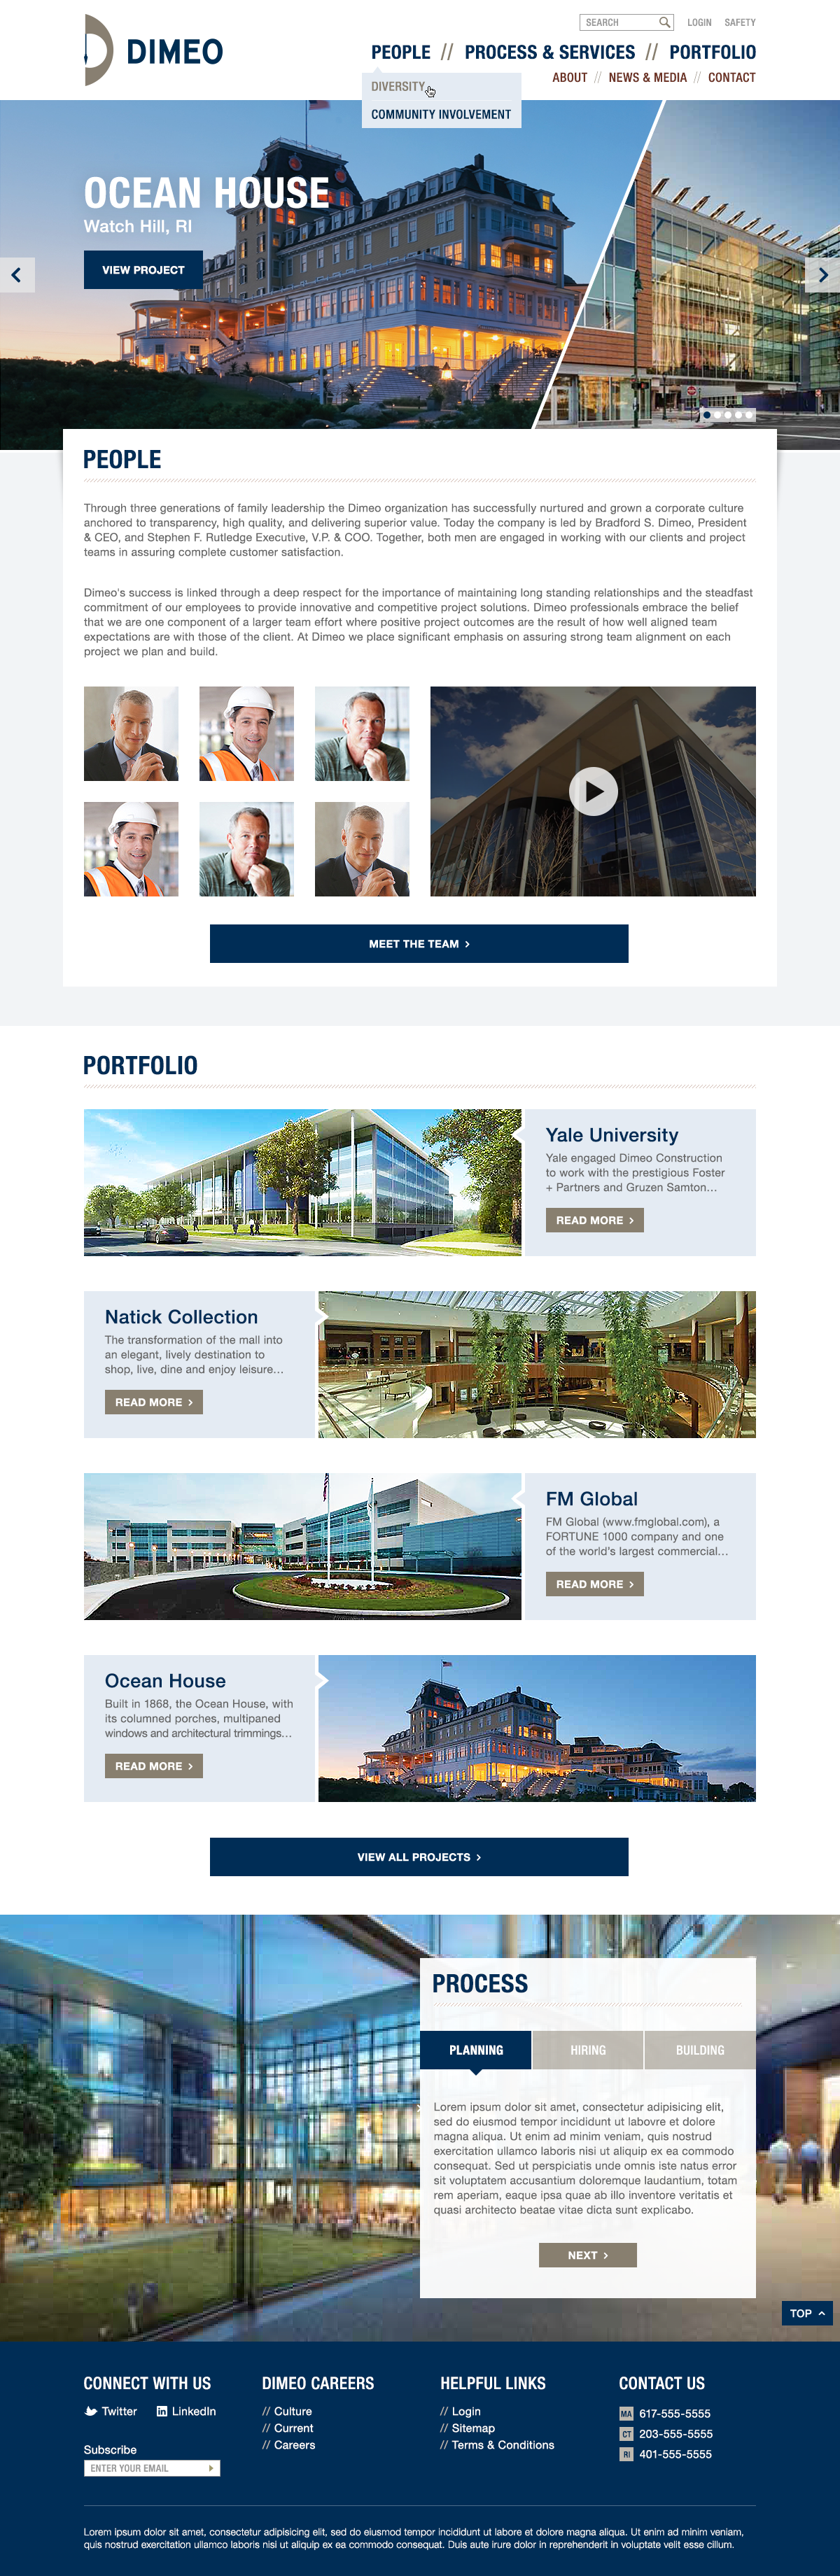 dimeo_web_1_homepage_v4-FINAL.png